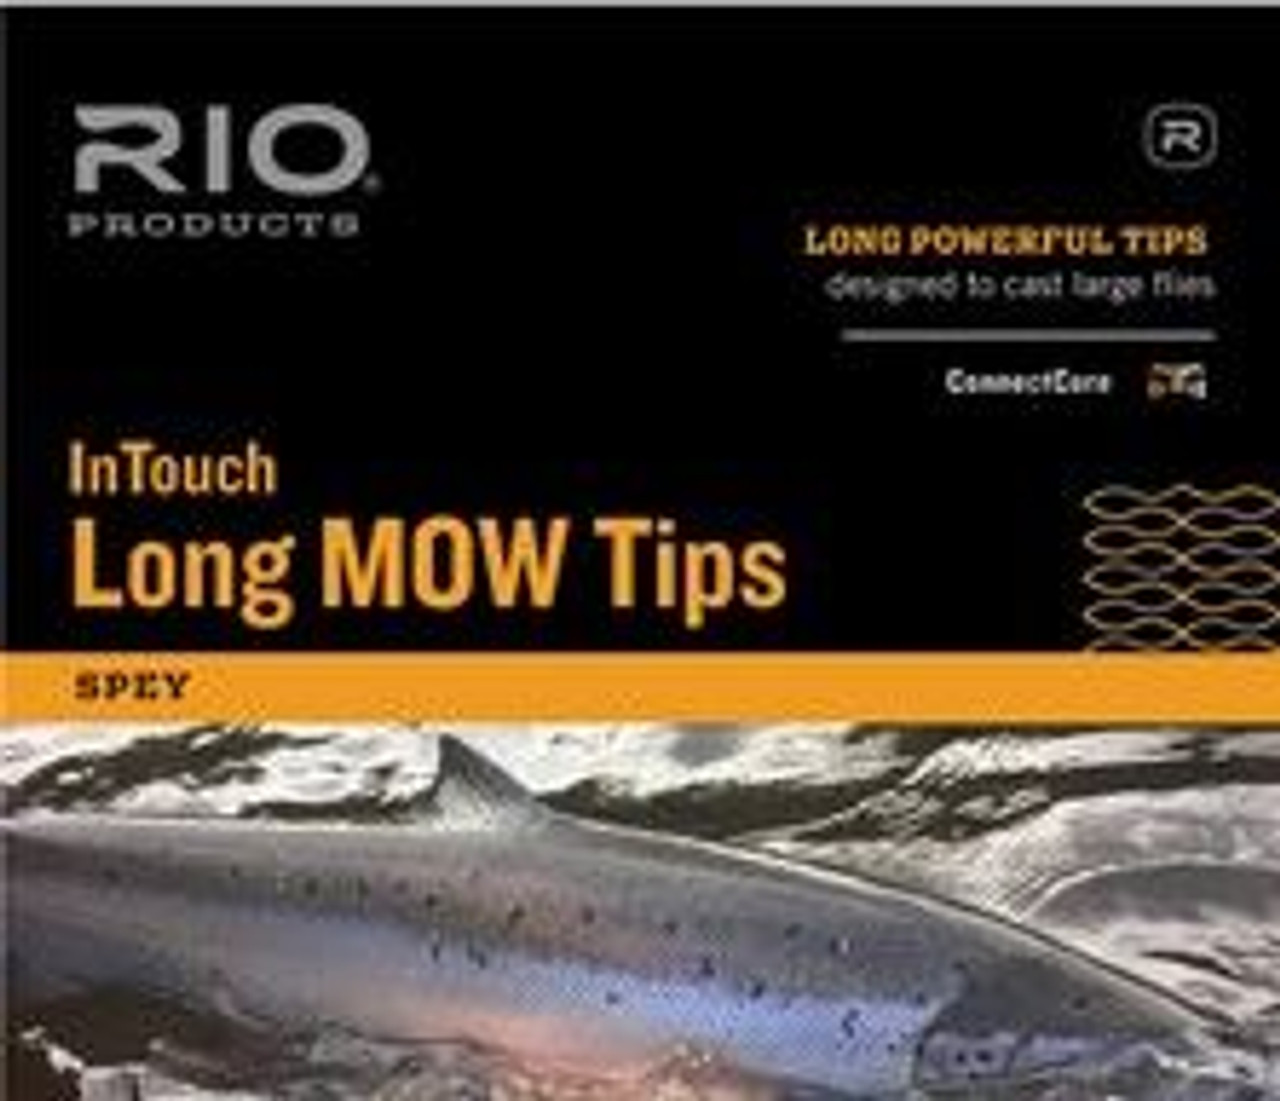 INTOUCH LONG MOW TIP